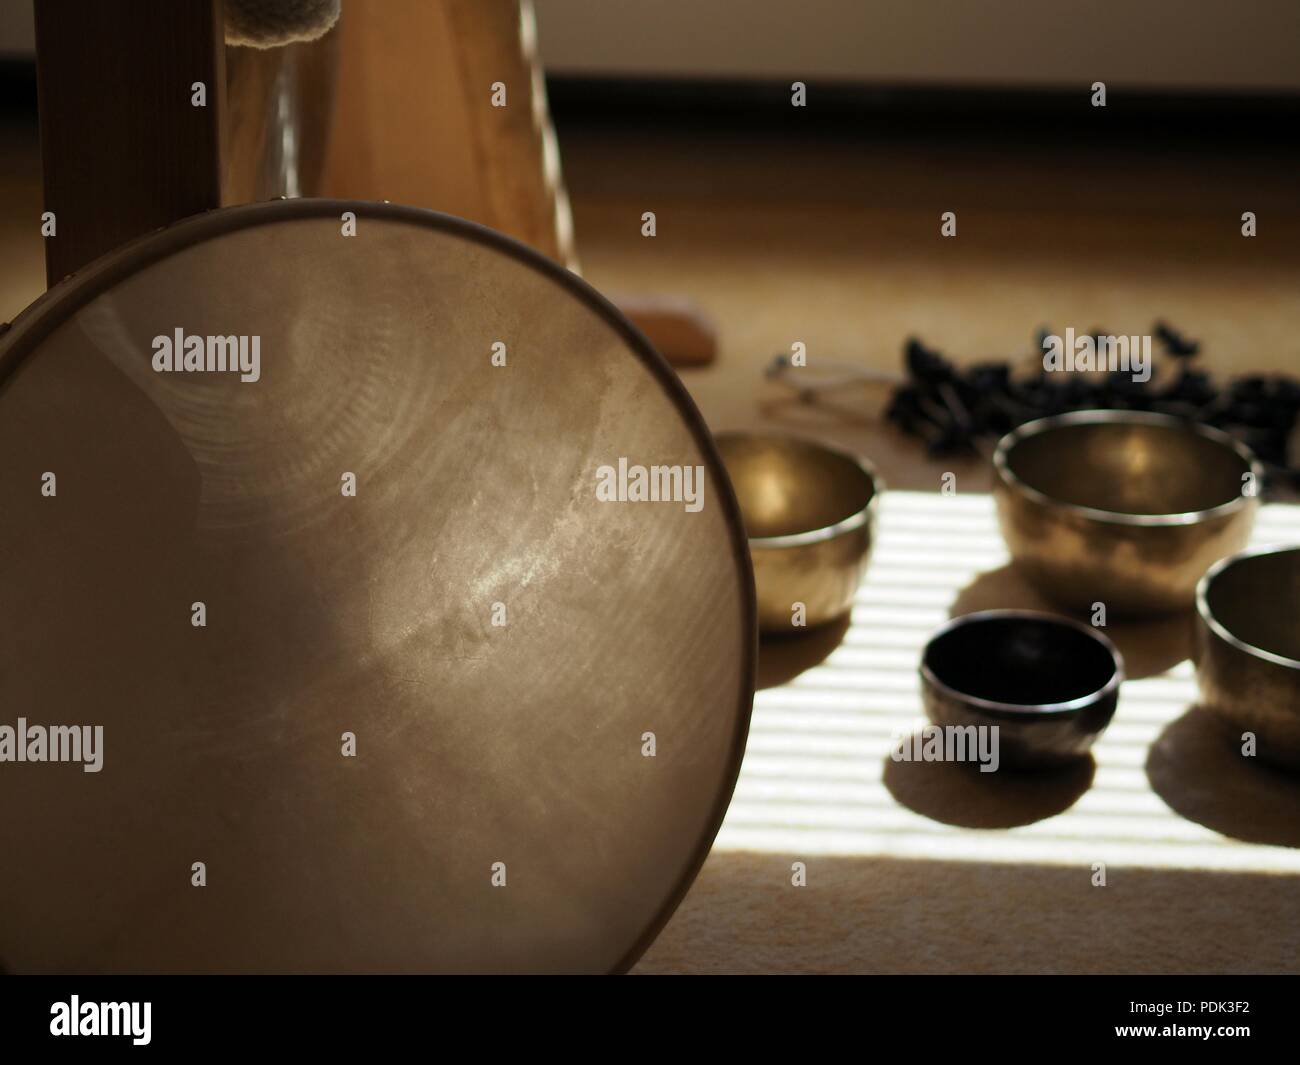 Sound healing instruments - Stock Image